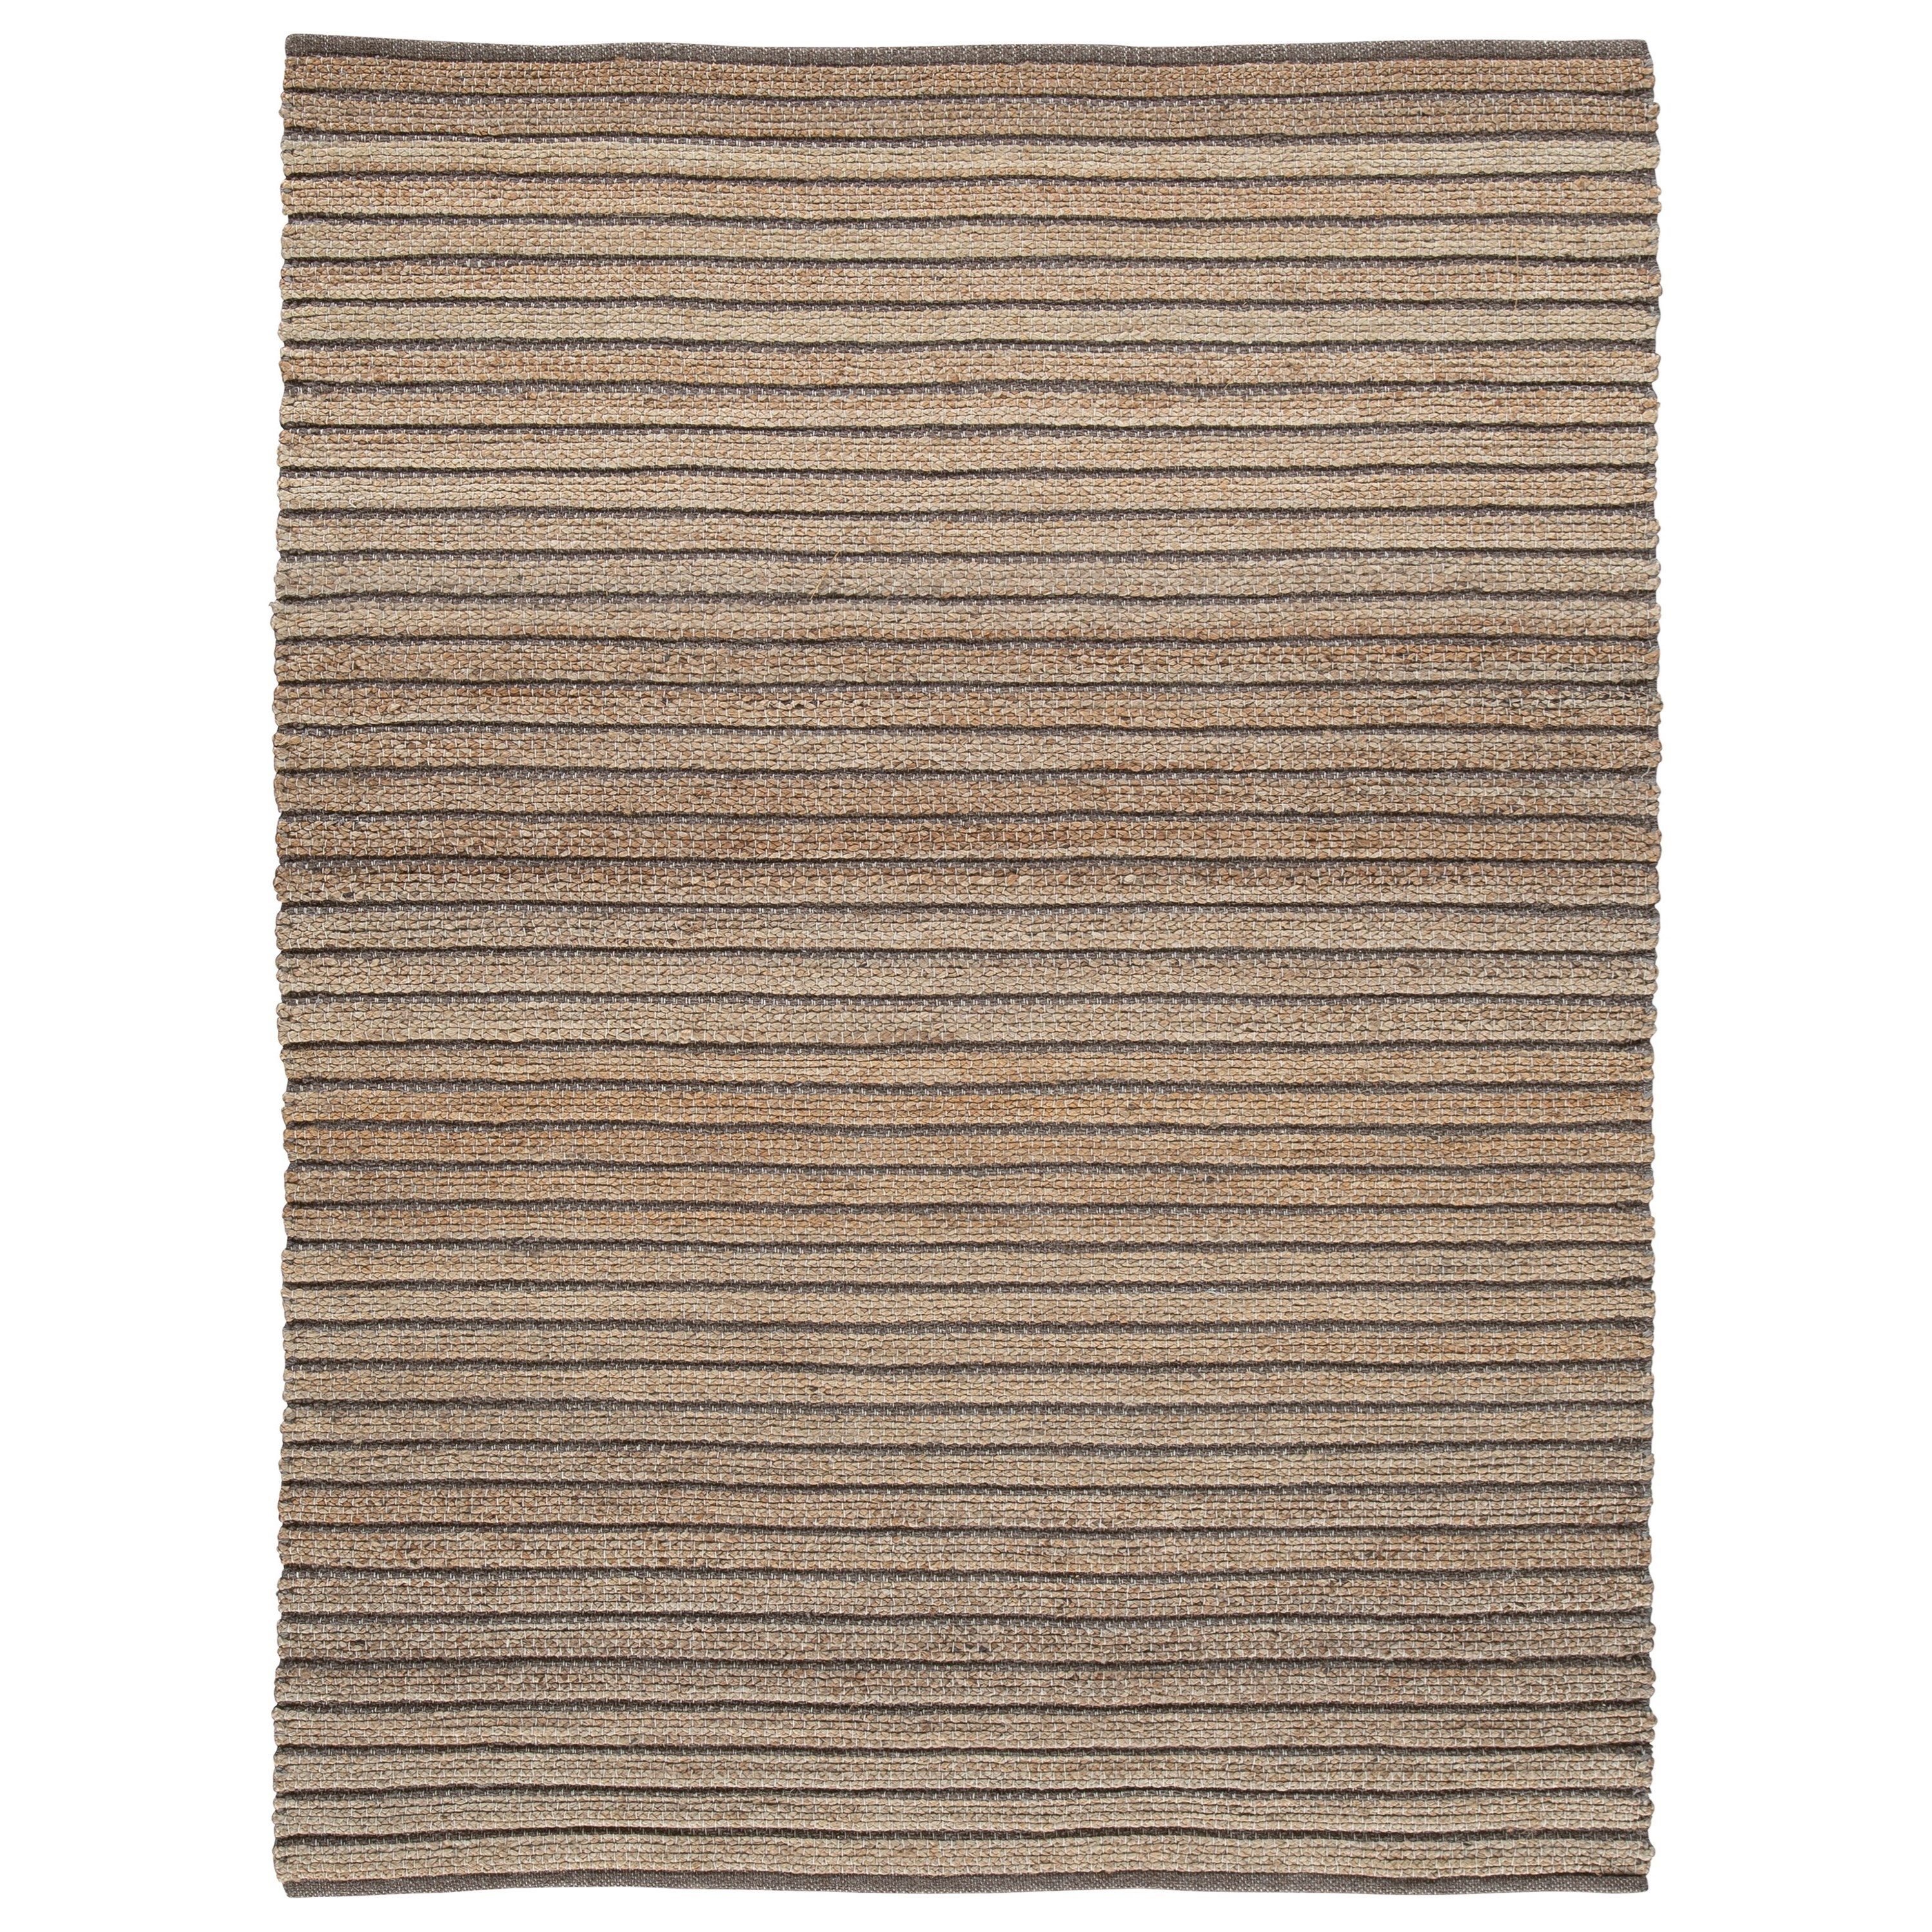 Casual Area Rugs Gliona Tan/Taupe Large Rug by Signature at Walker's Furniture